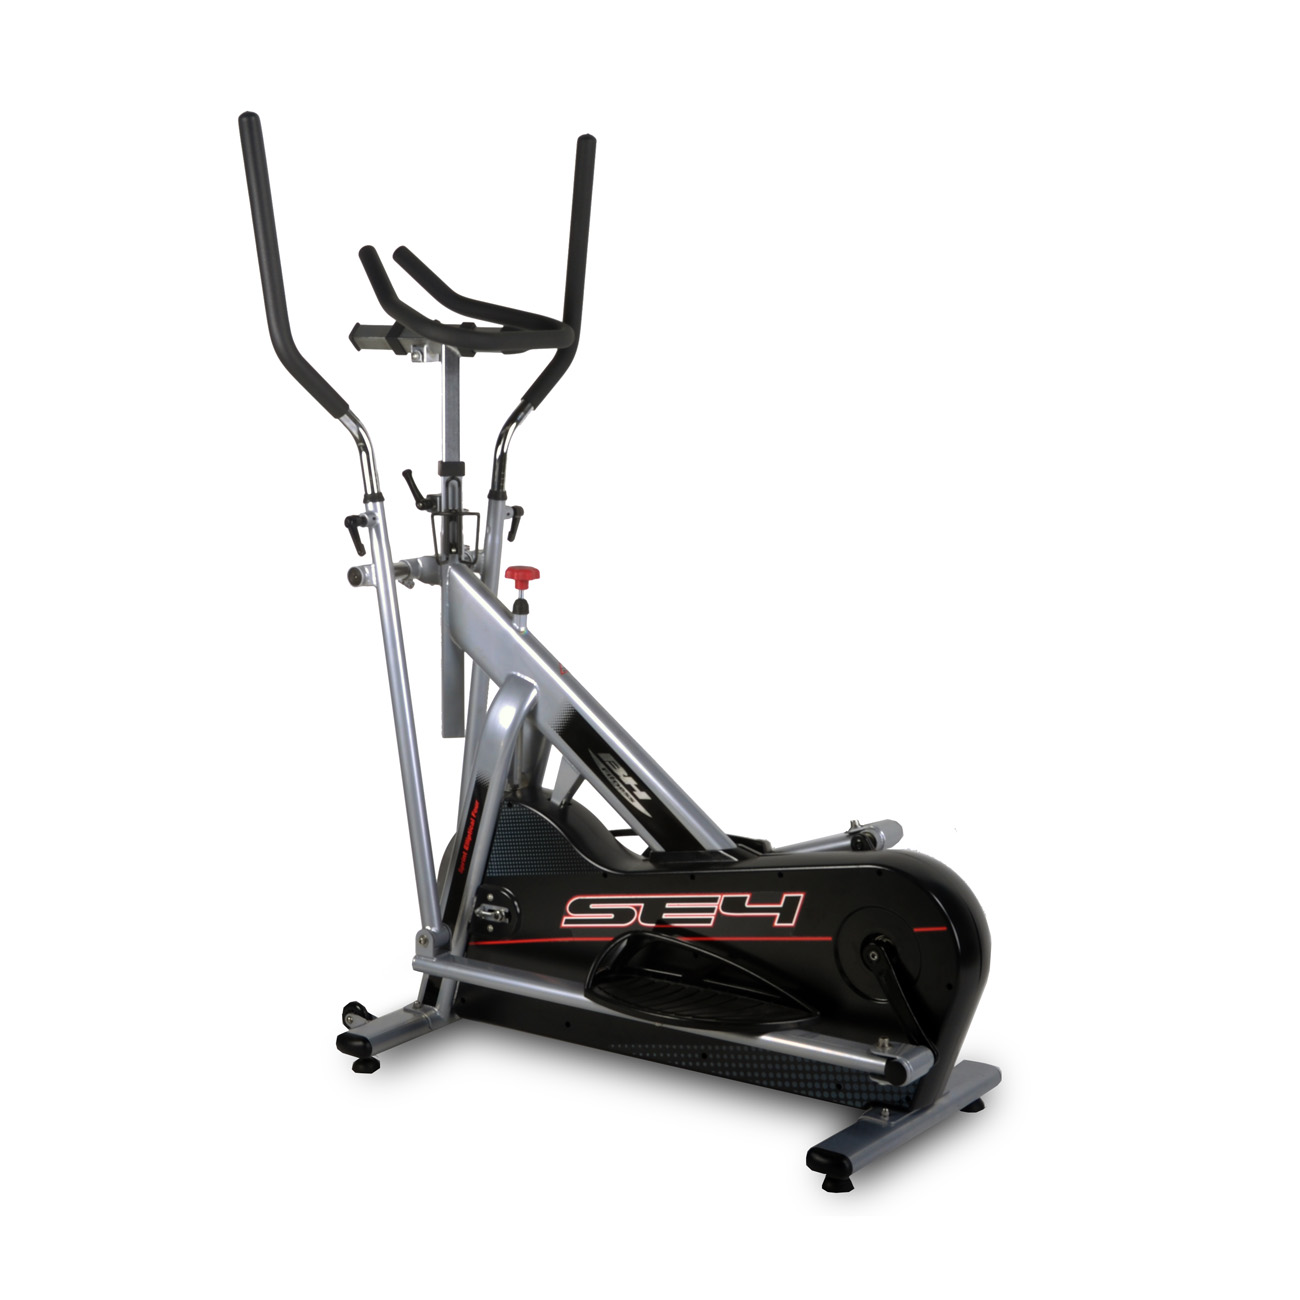 bh fitness se4 elliptical indoor cycle cross trainer. Black Bedroom Furniture Sets. Home Design Ideas